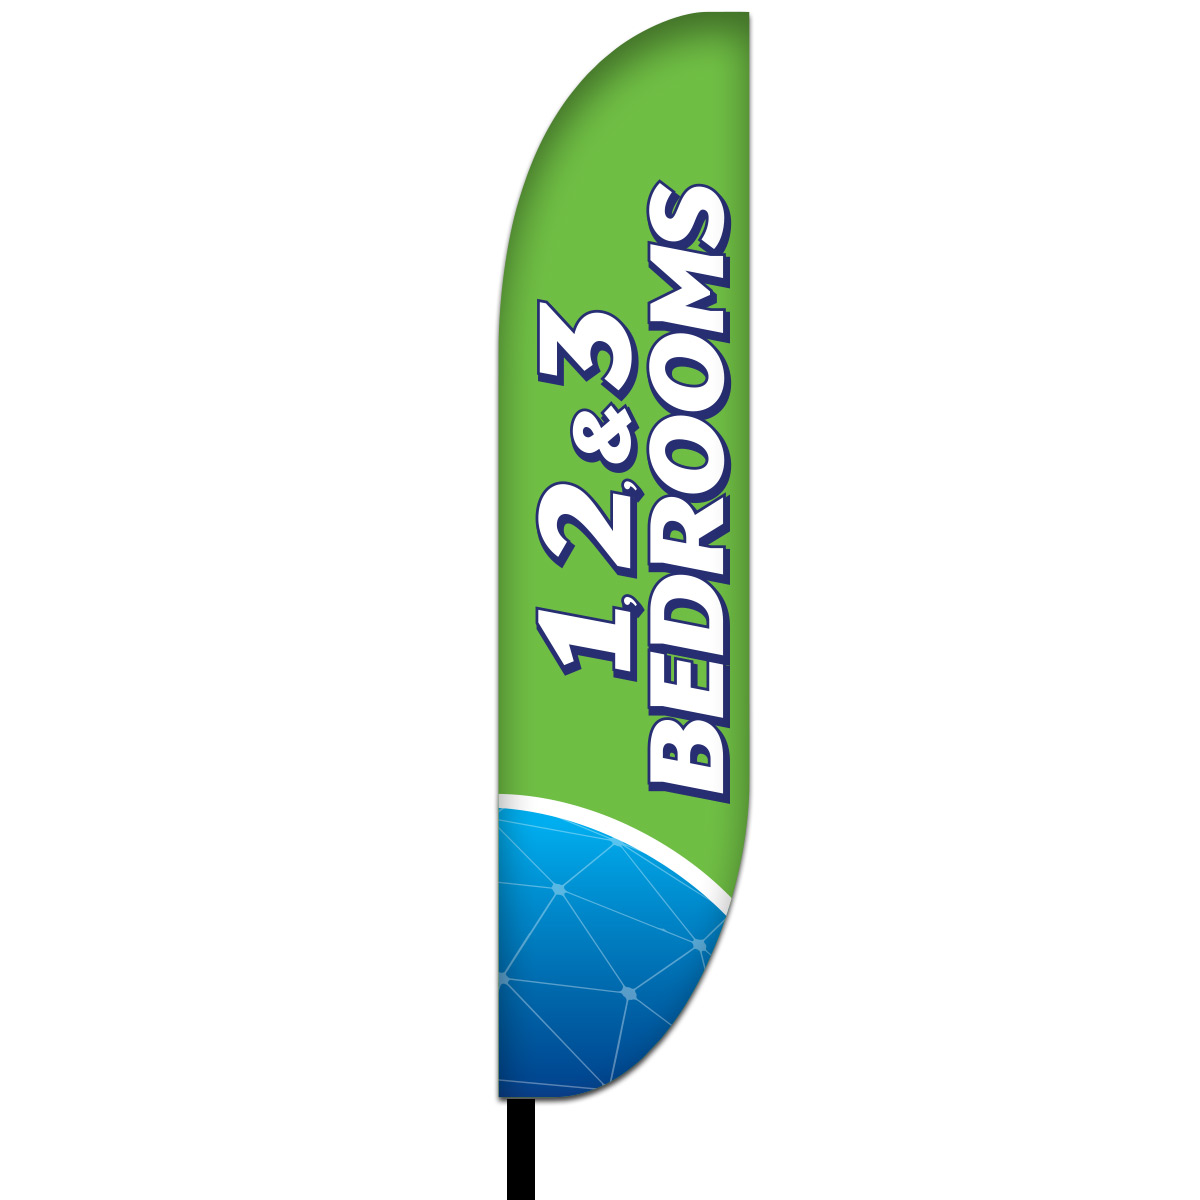 1-2-3 Bed Rooms Feather Flag Design